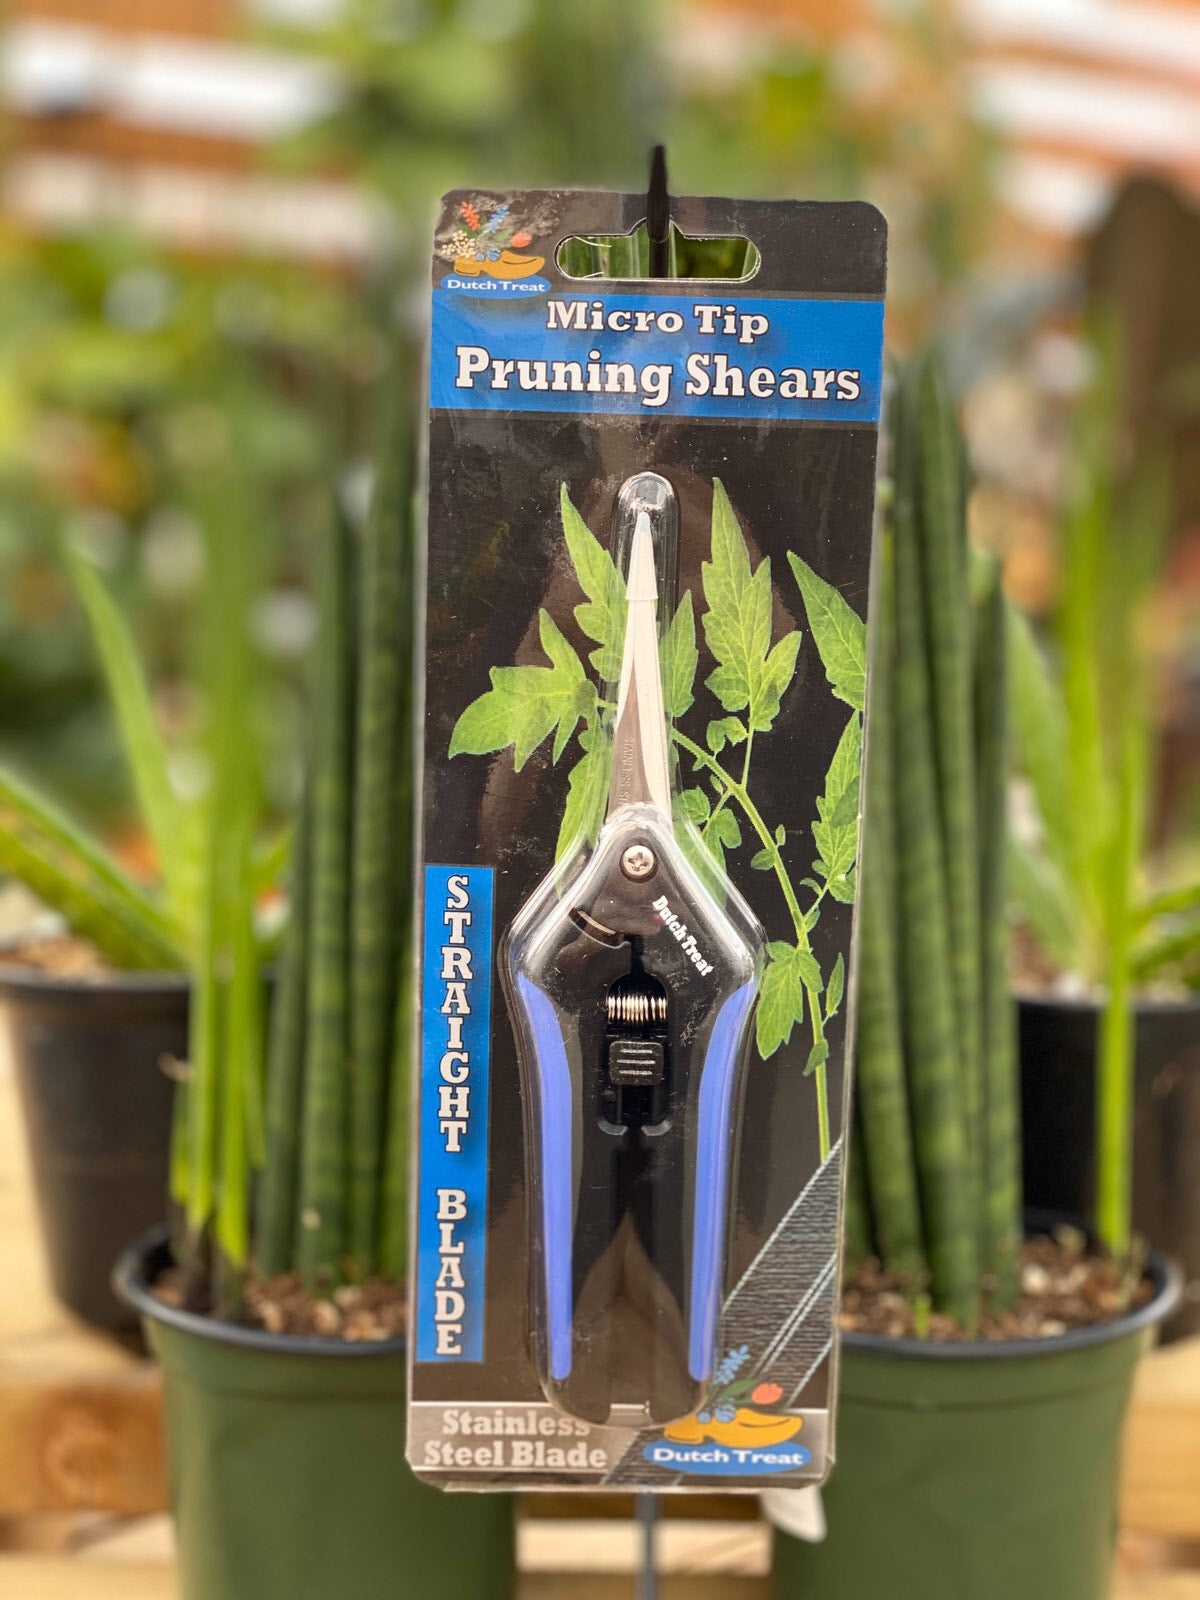 DutchTreat Micro Tip Pruning Shears